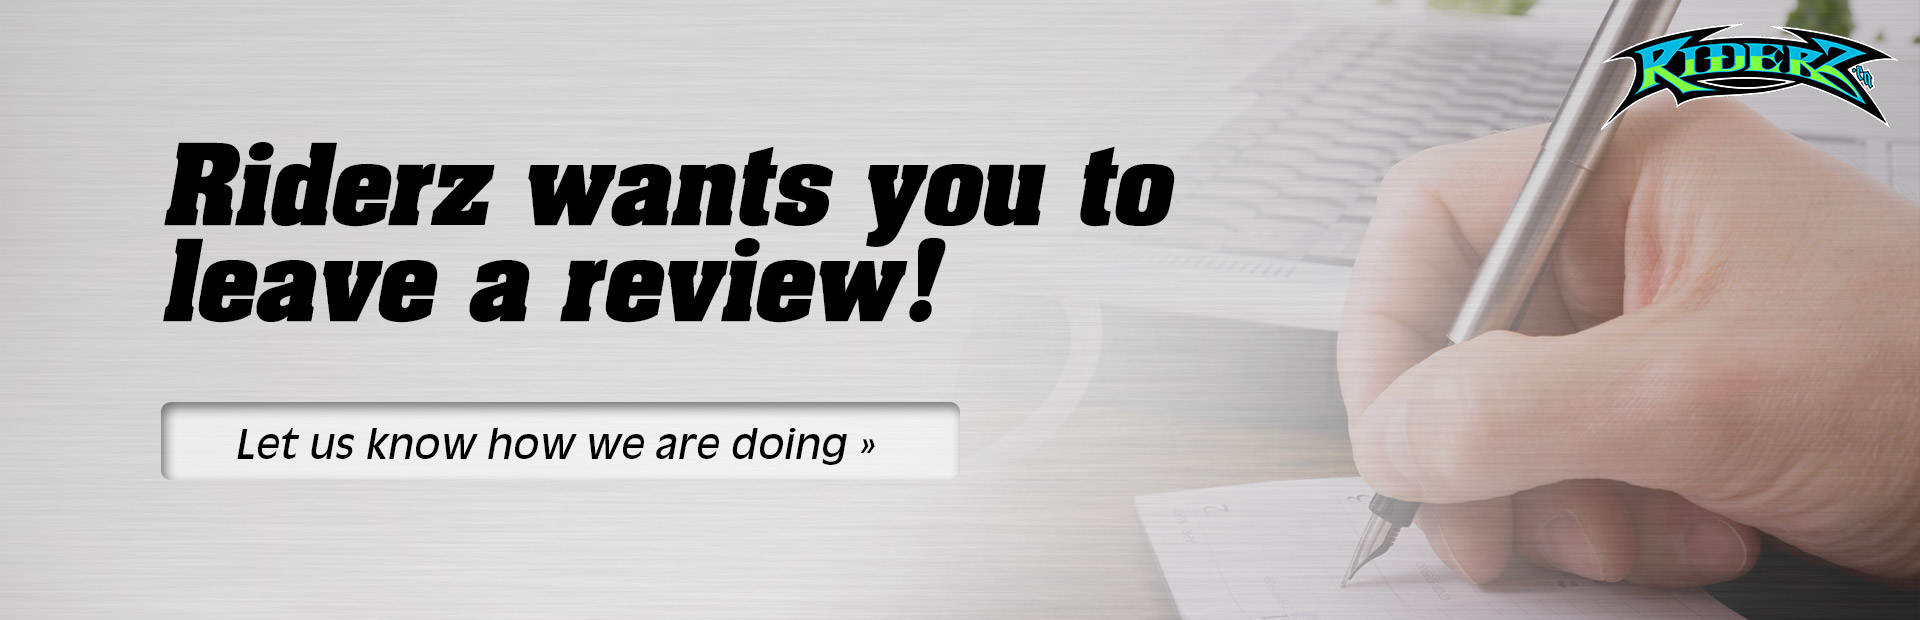 Riderz wants you to leave a review! Let us know how we are doing.